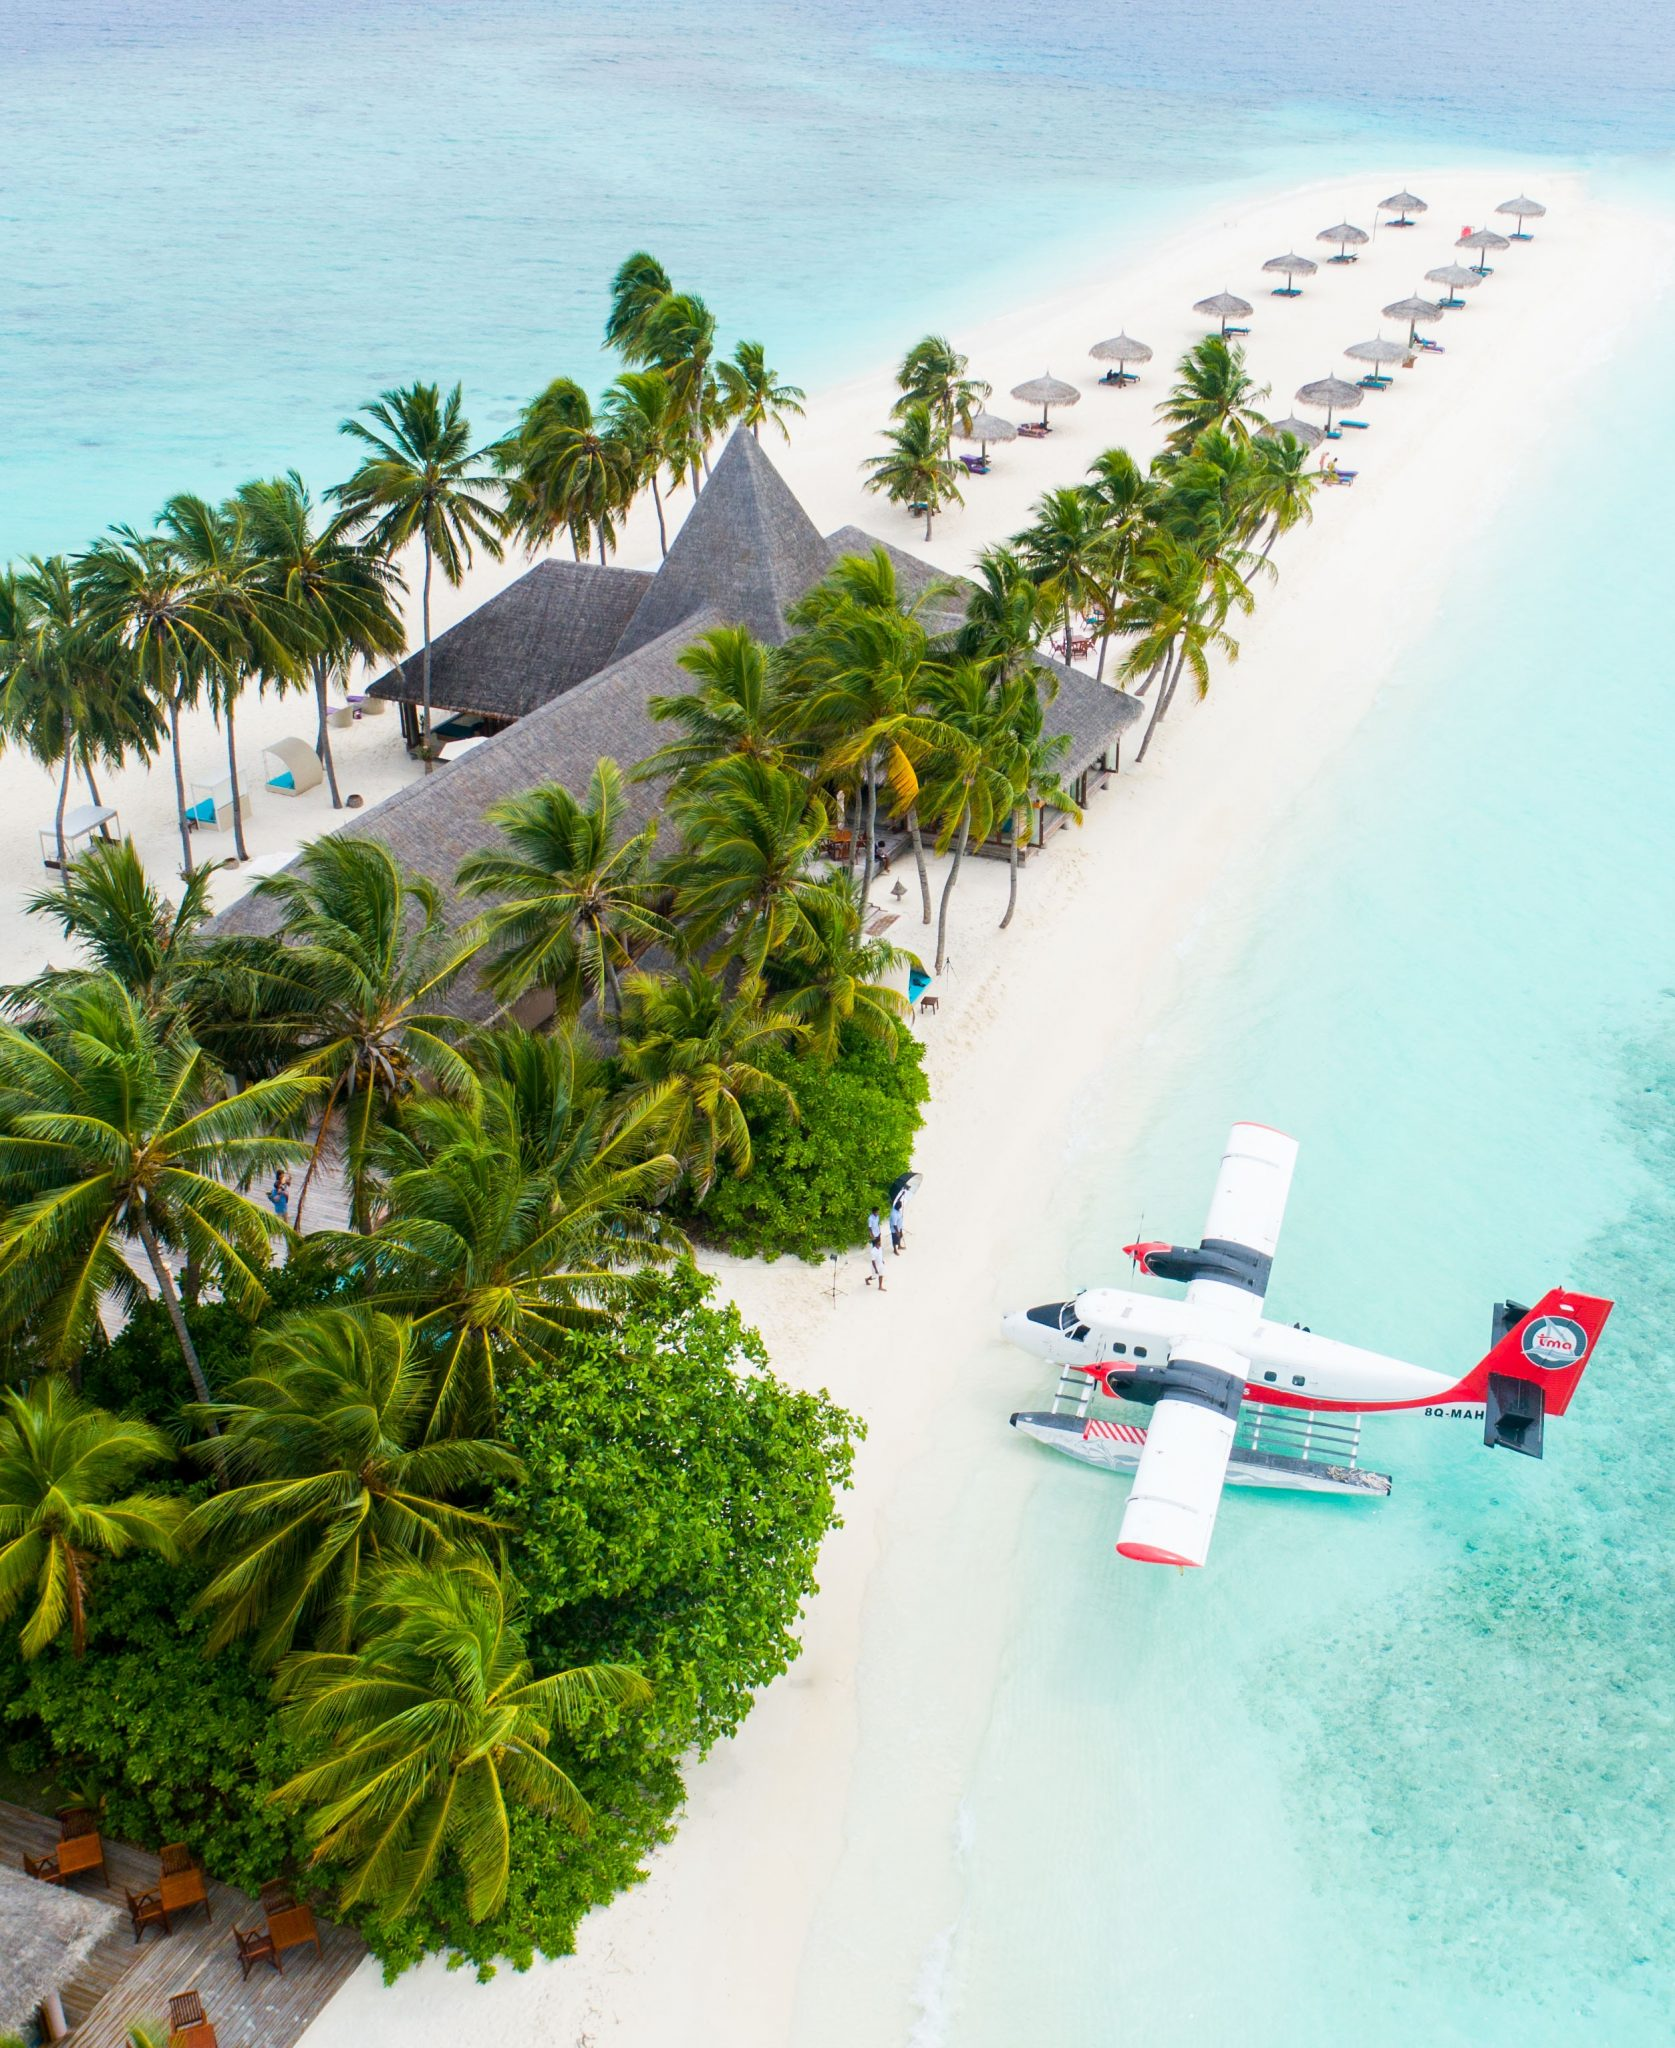 Private jet hire and aircraft charter